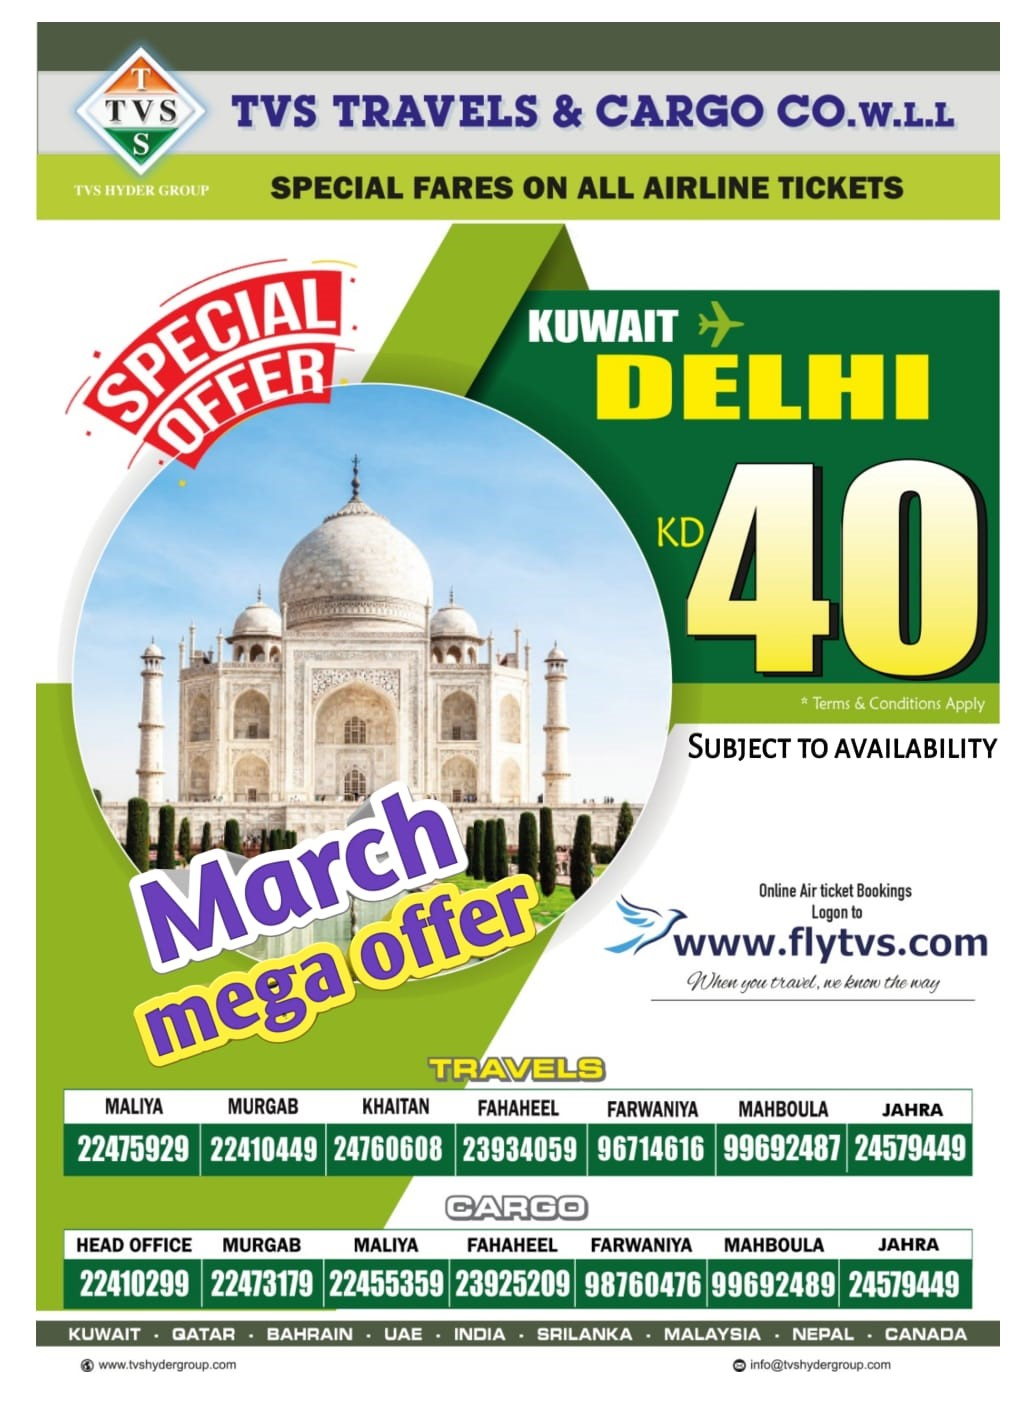 MARCH TICKET OFFER